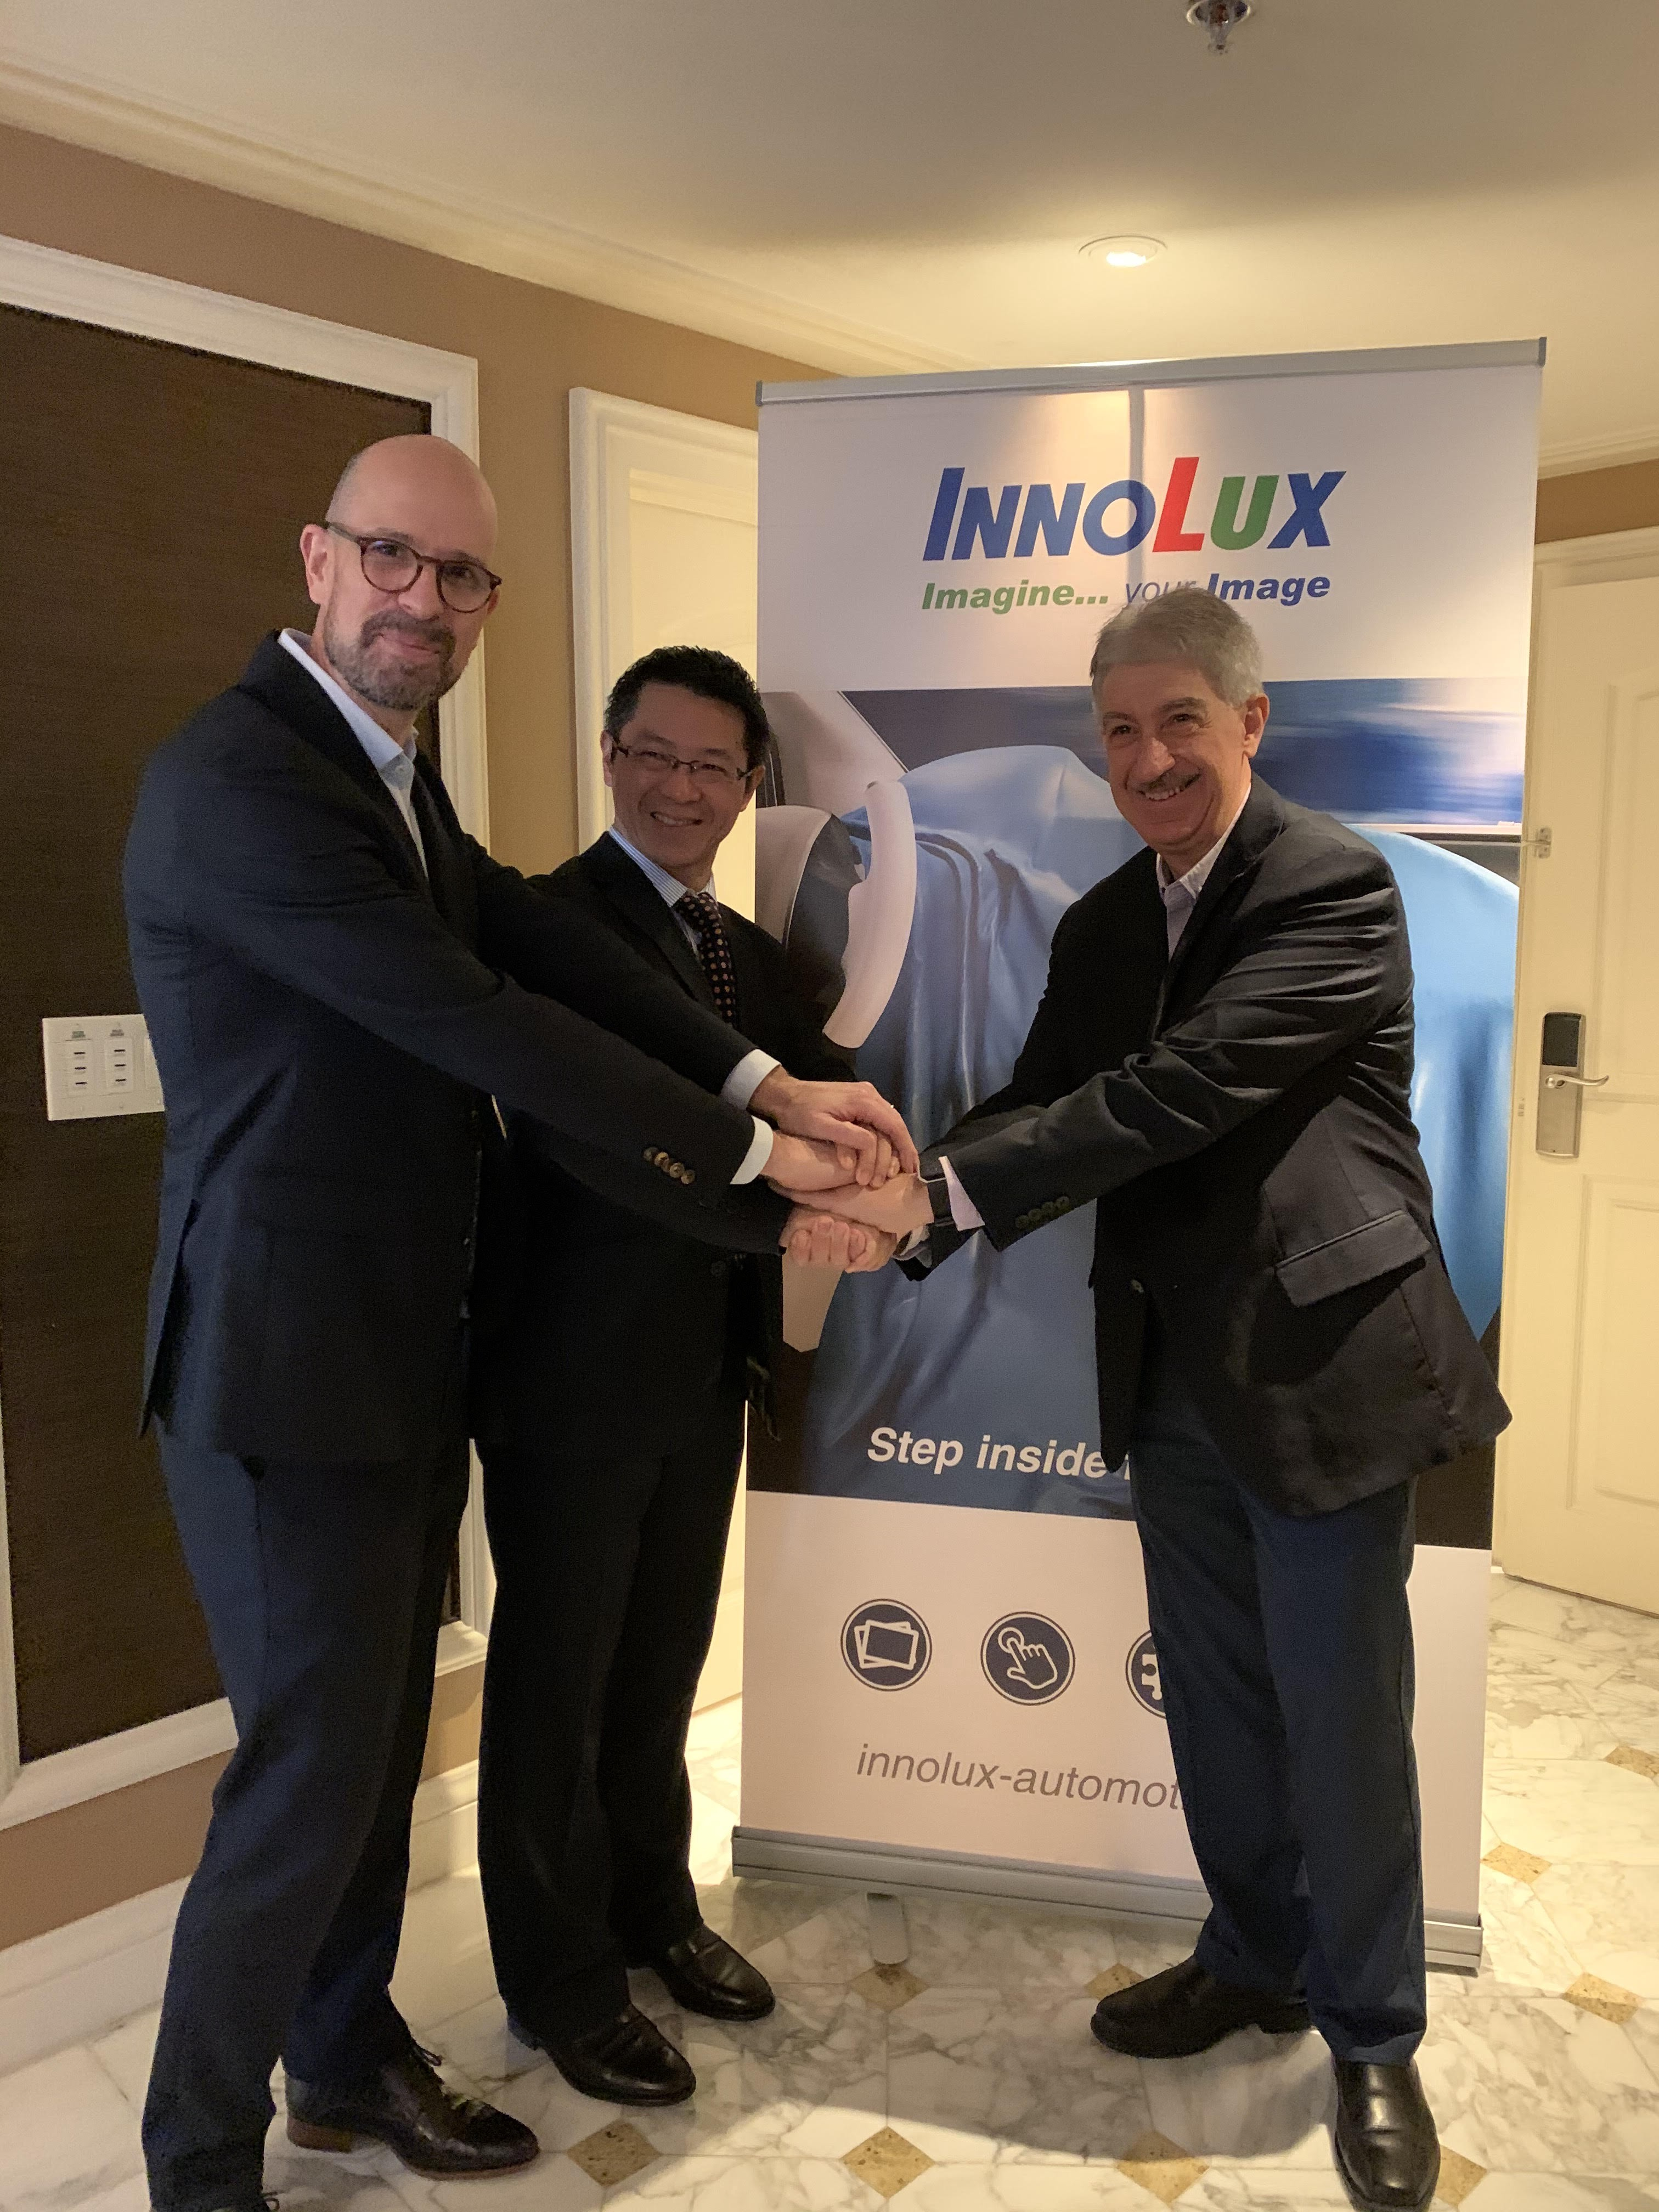 Innolux and Tanvas executives shaking hands in front of an Innolux banner stand